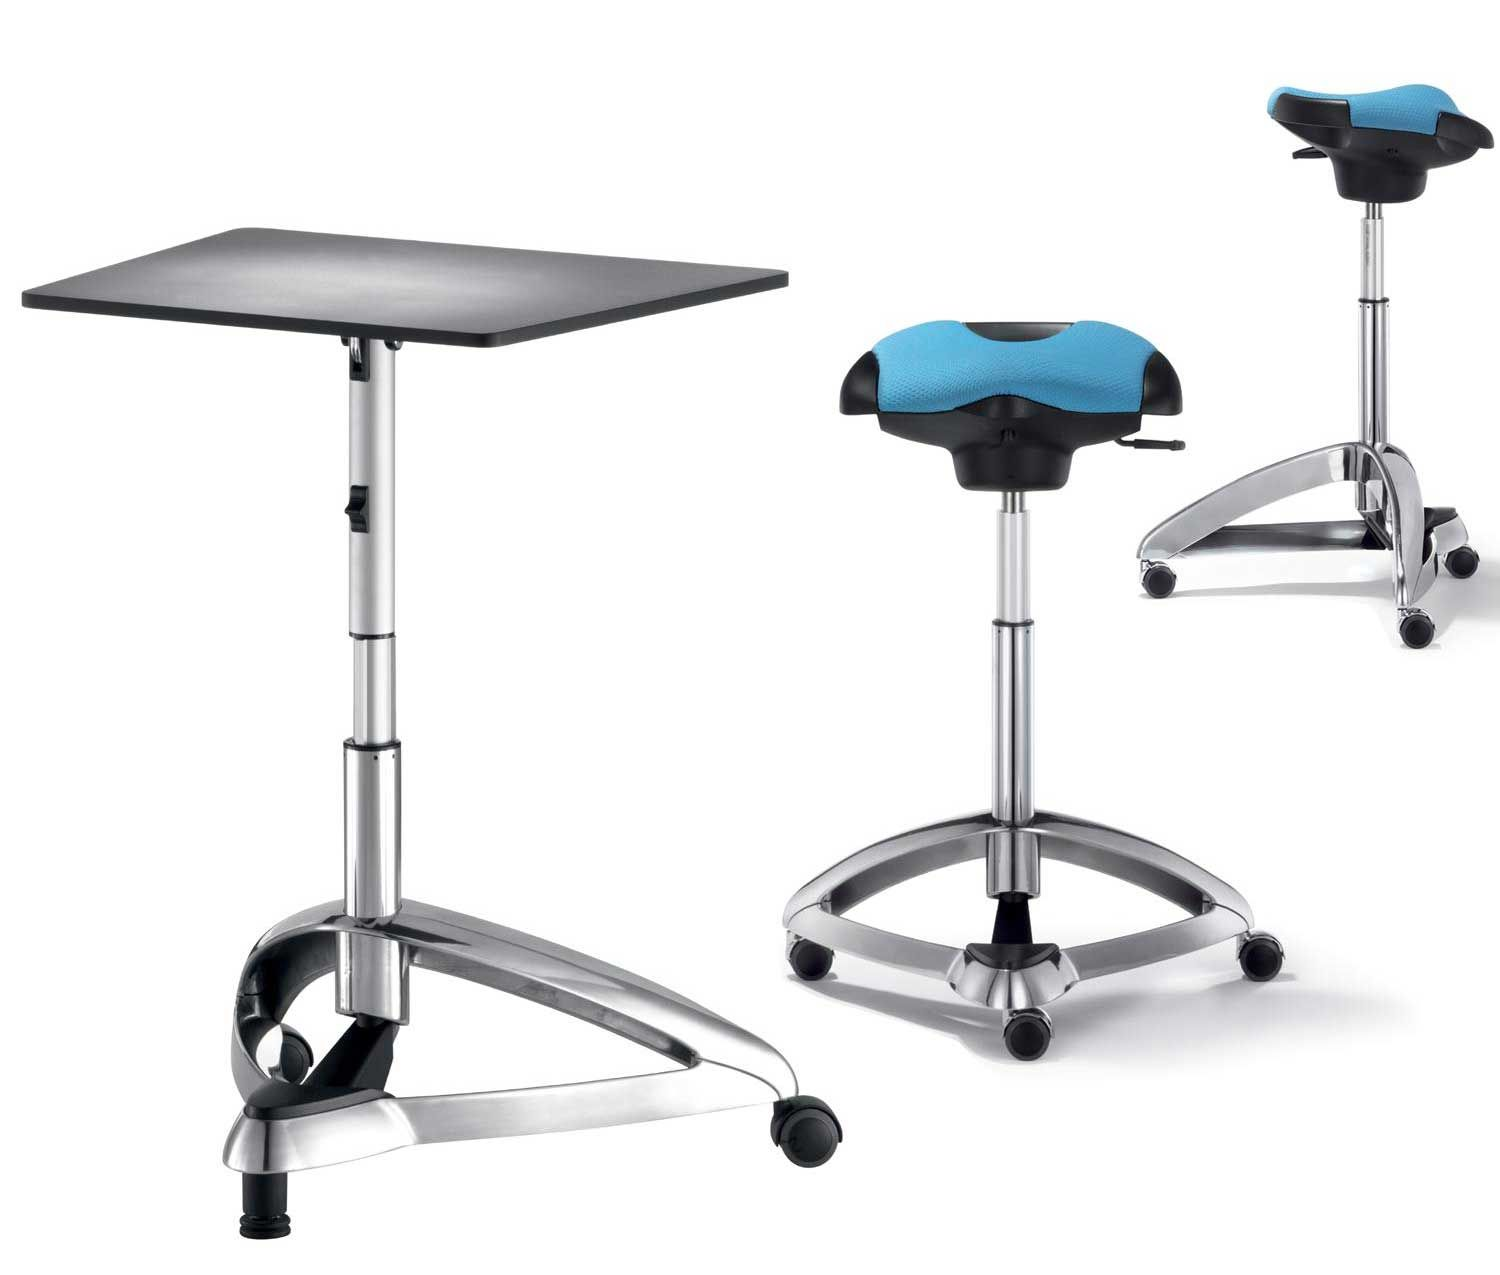 Backless ergonomic chair - Dolpdhin Futuristic Metal Standing Office Desk And Seats